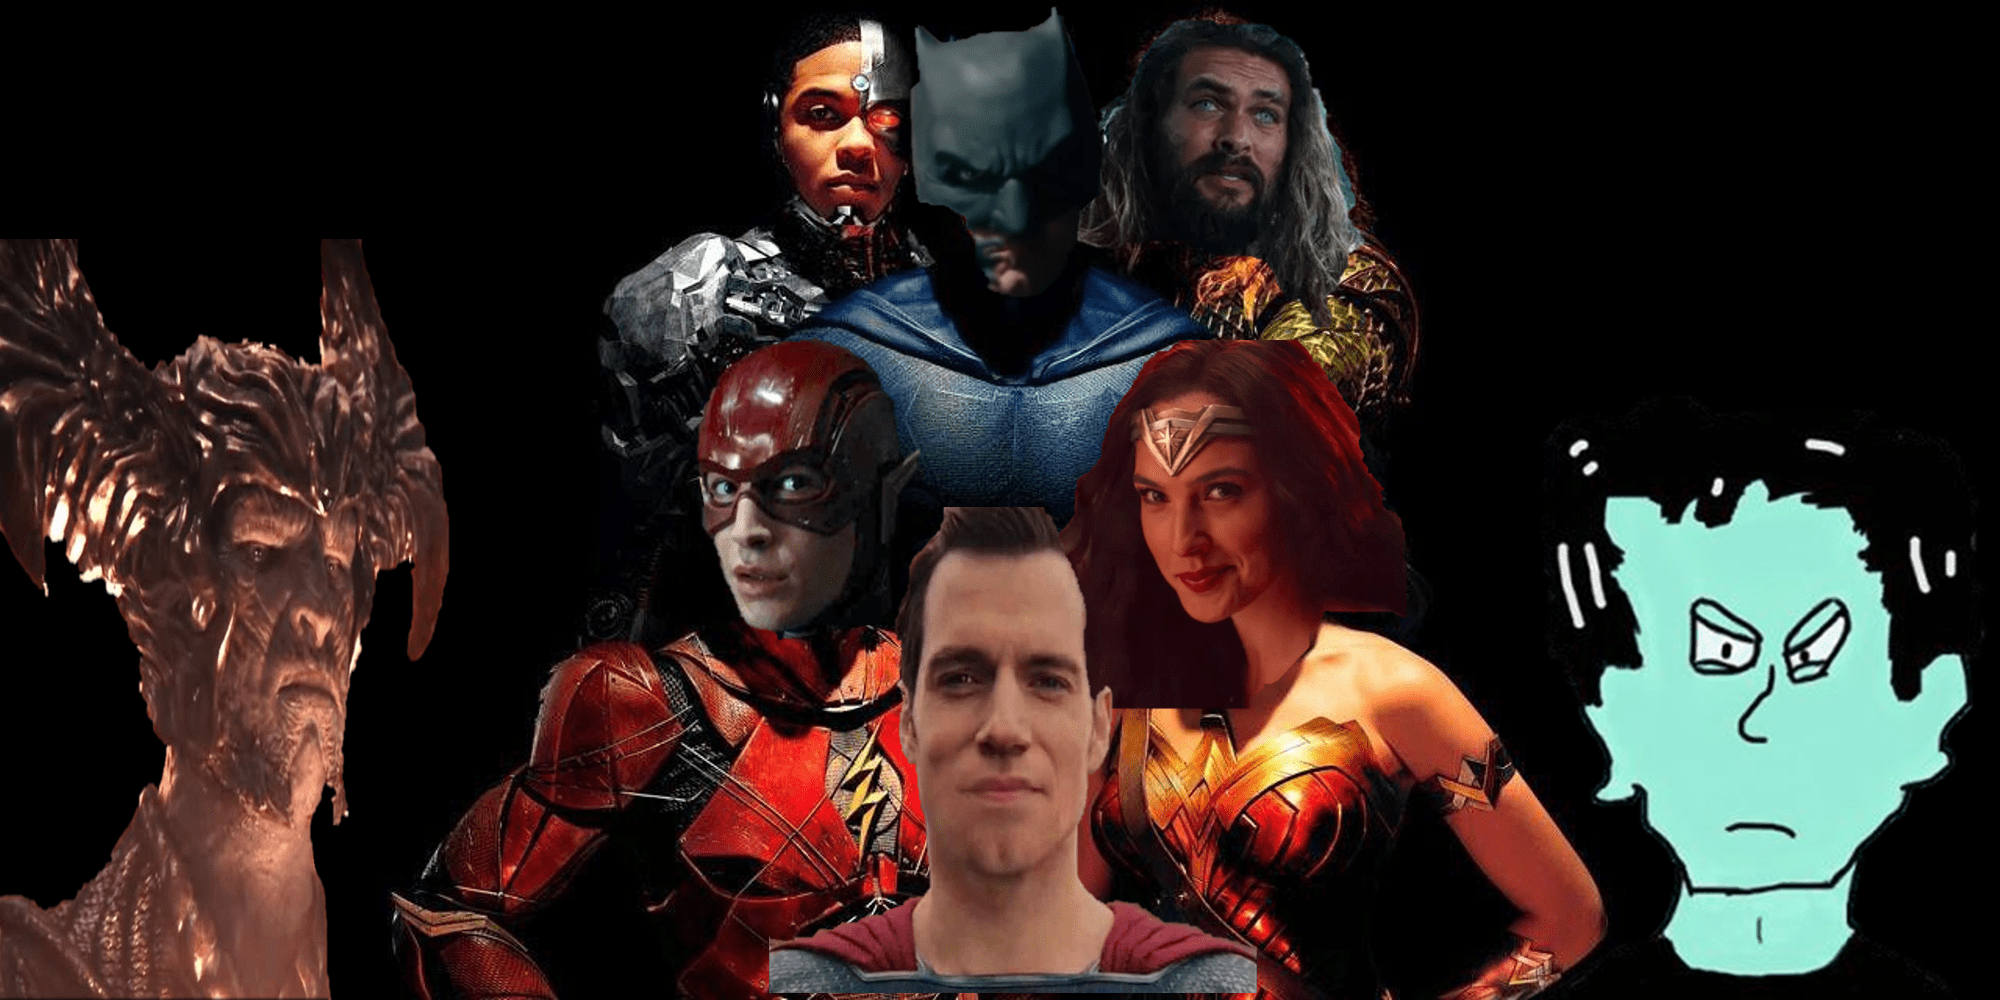 JUSTICE LEAGUE IS A JOKE!